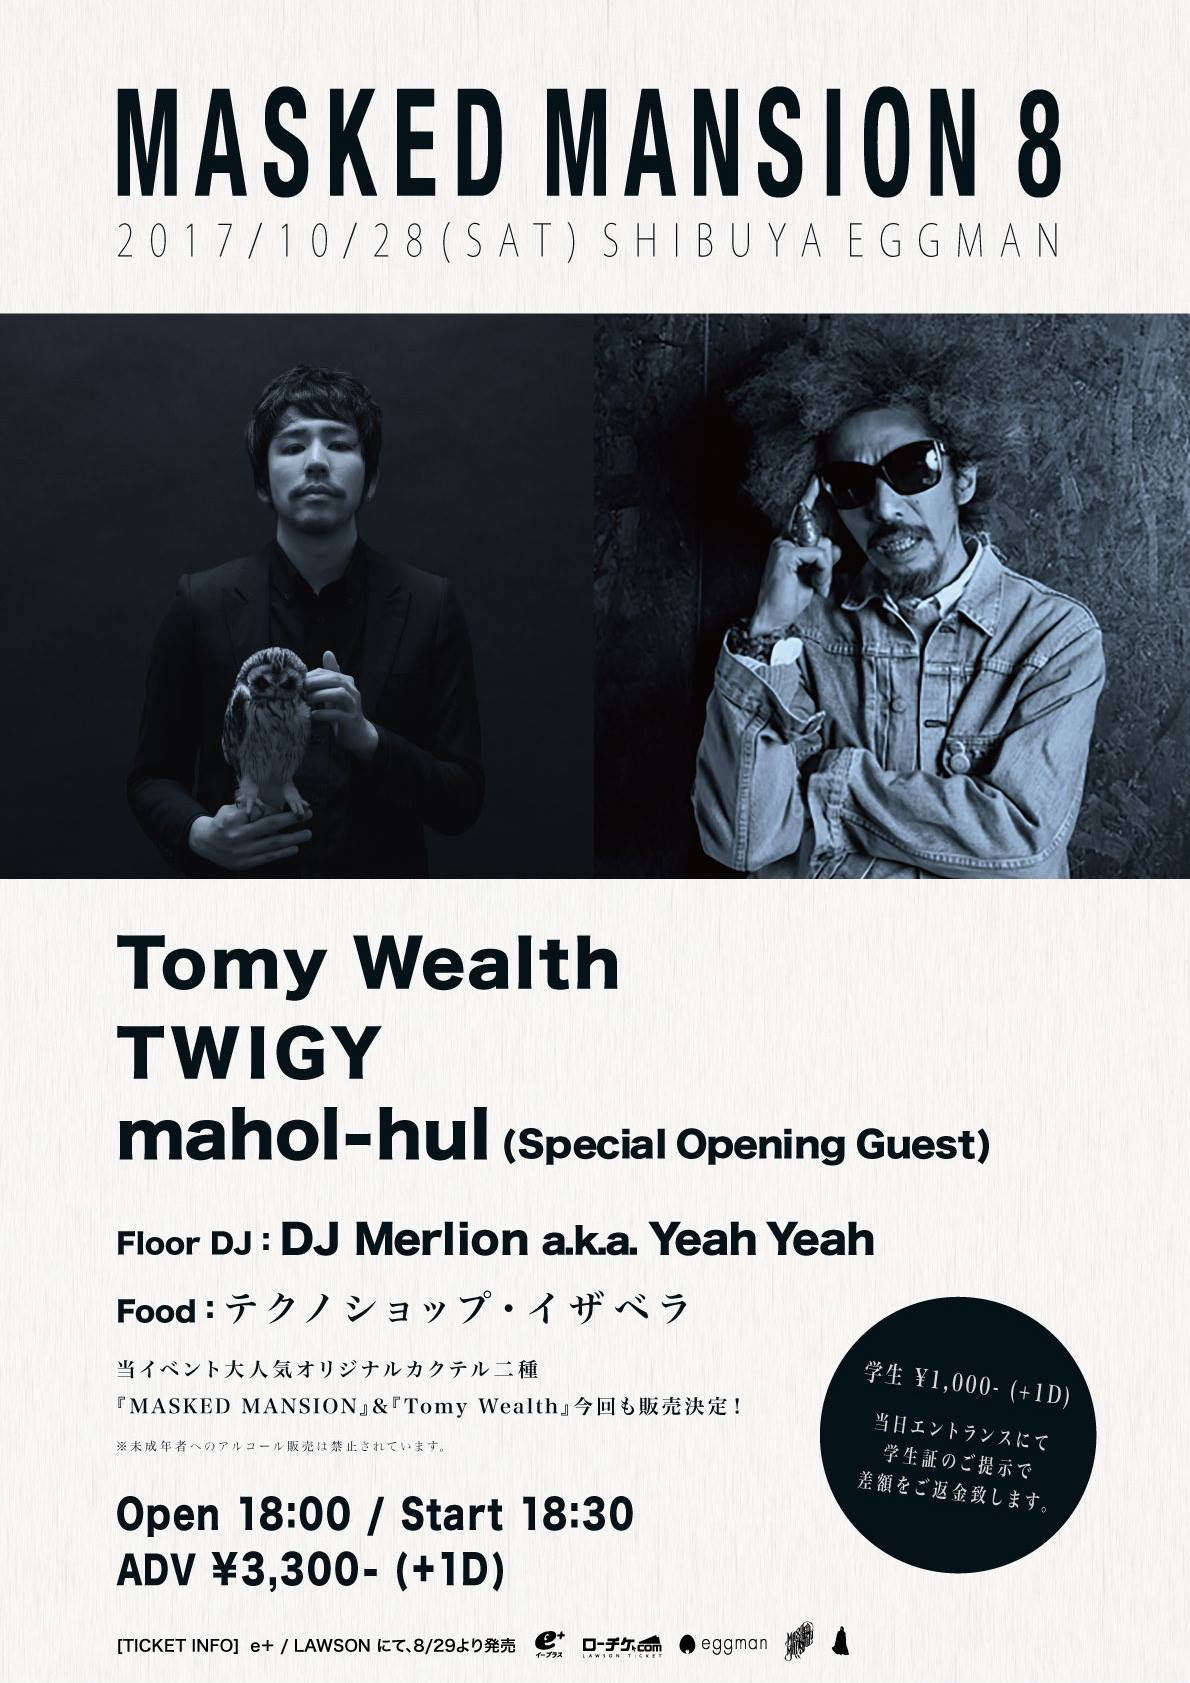 TOMY WEALTH presents 『MASKED MANSION 8』